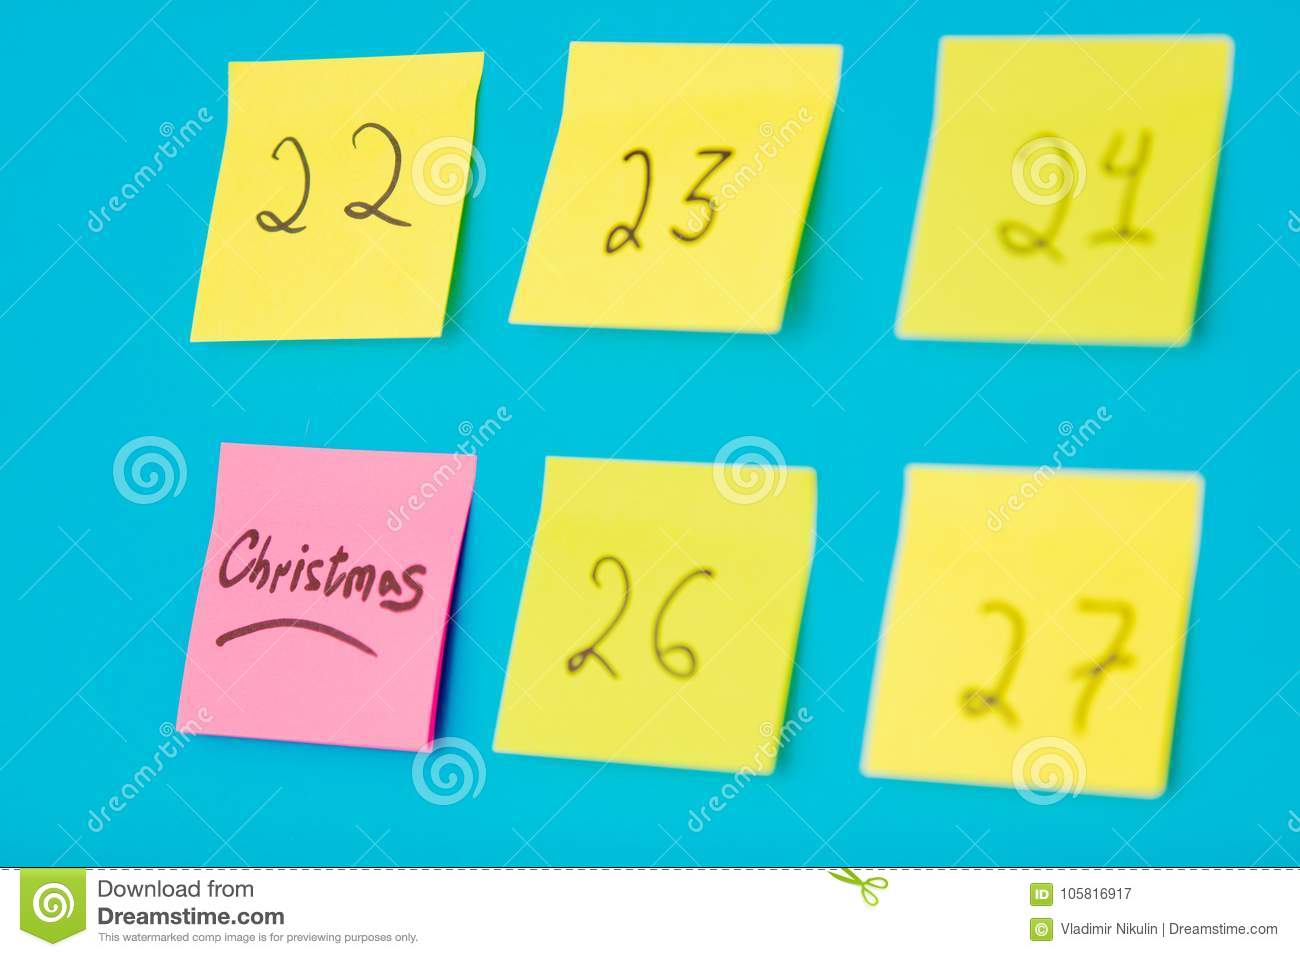 How Many Days Before Christmas.Color Stickers With Numbers Counting The Days Before